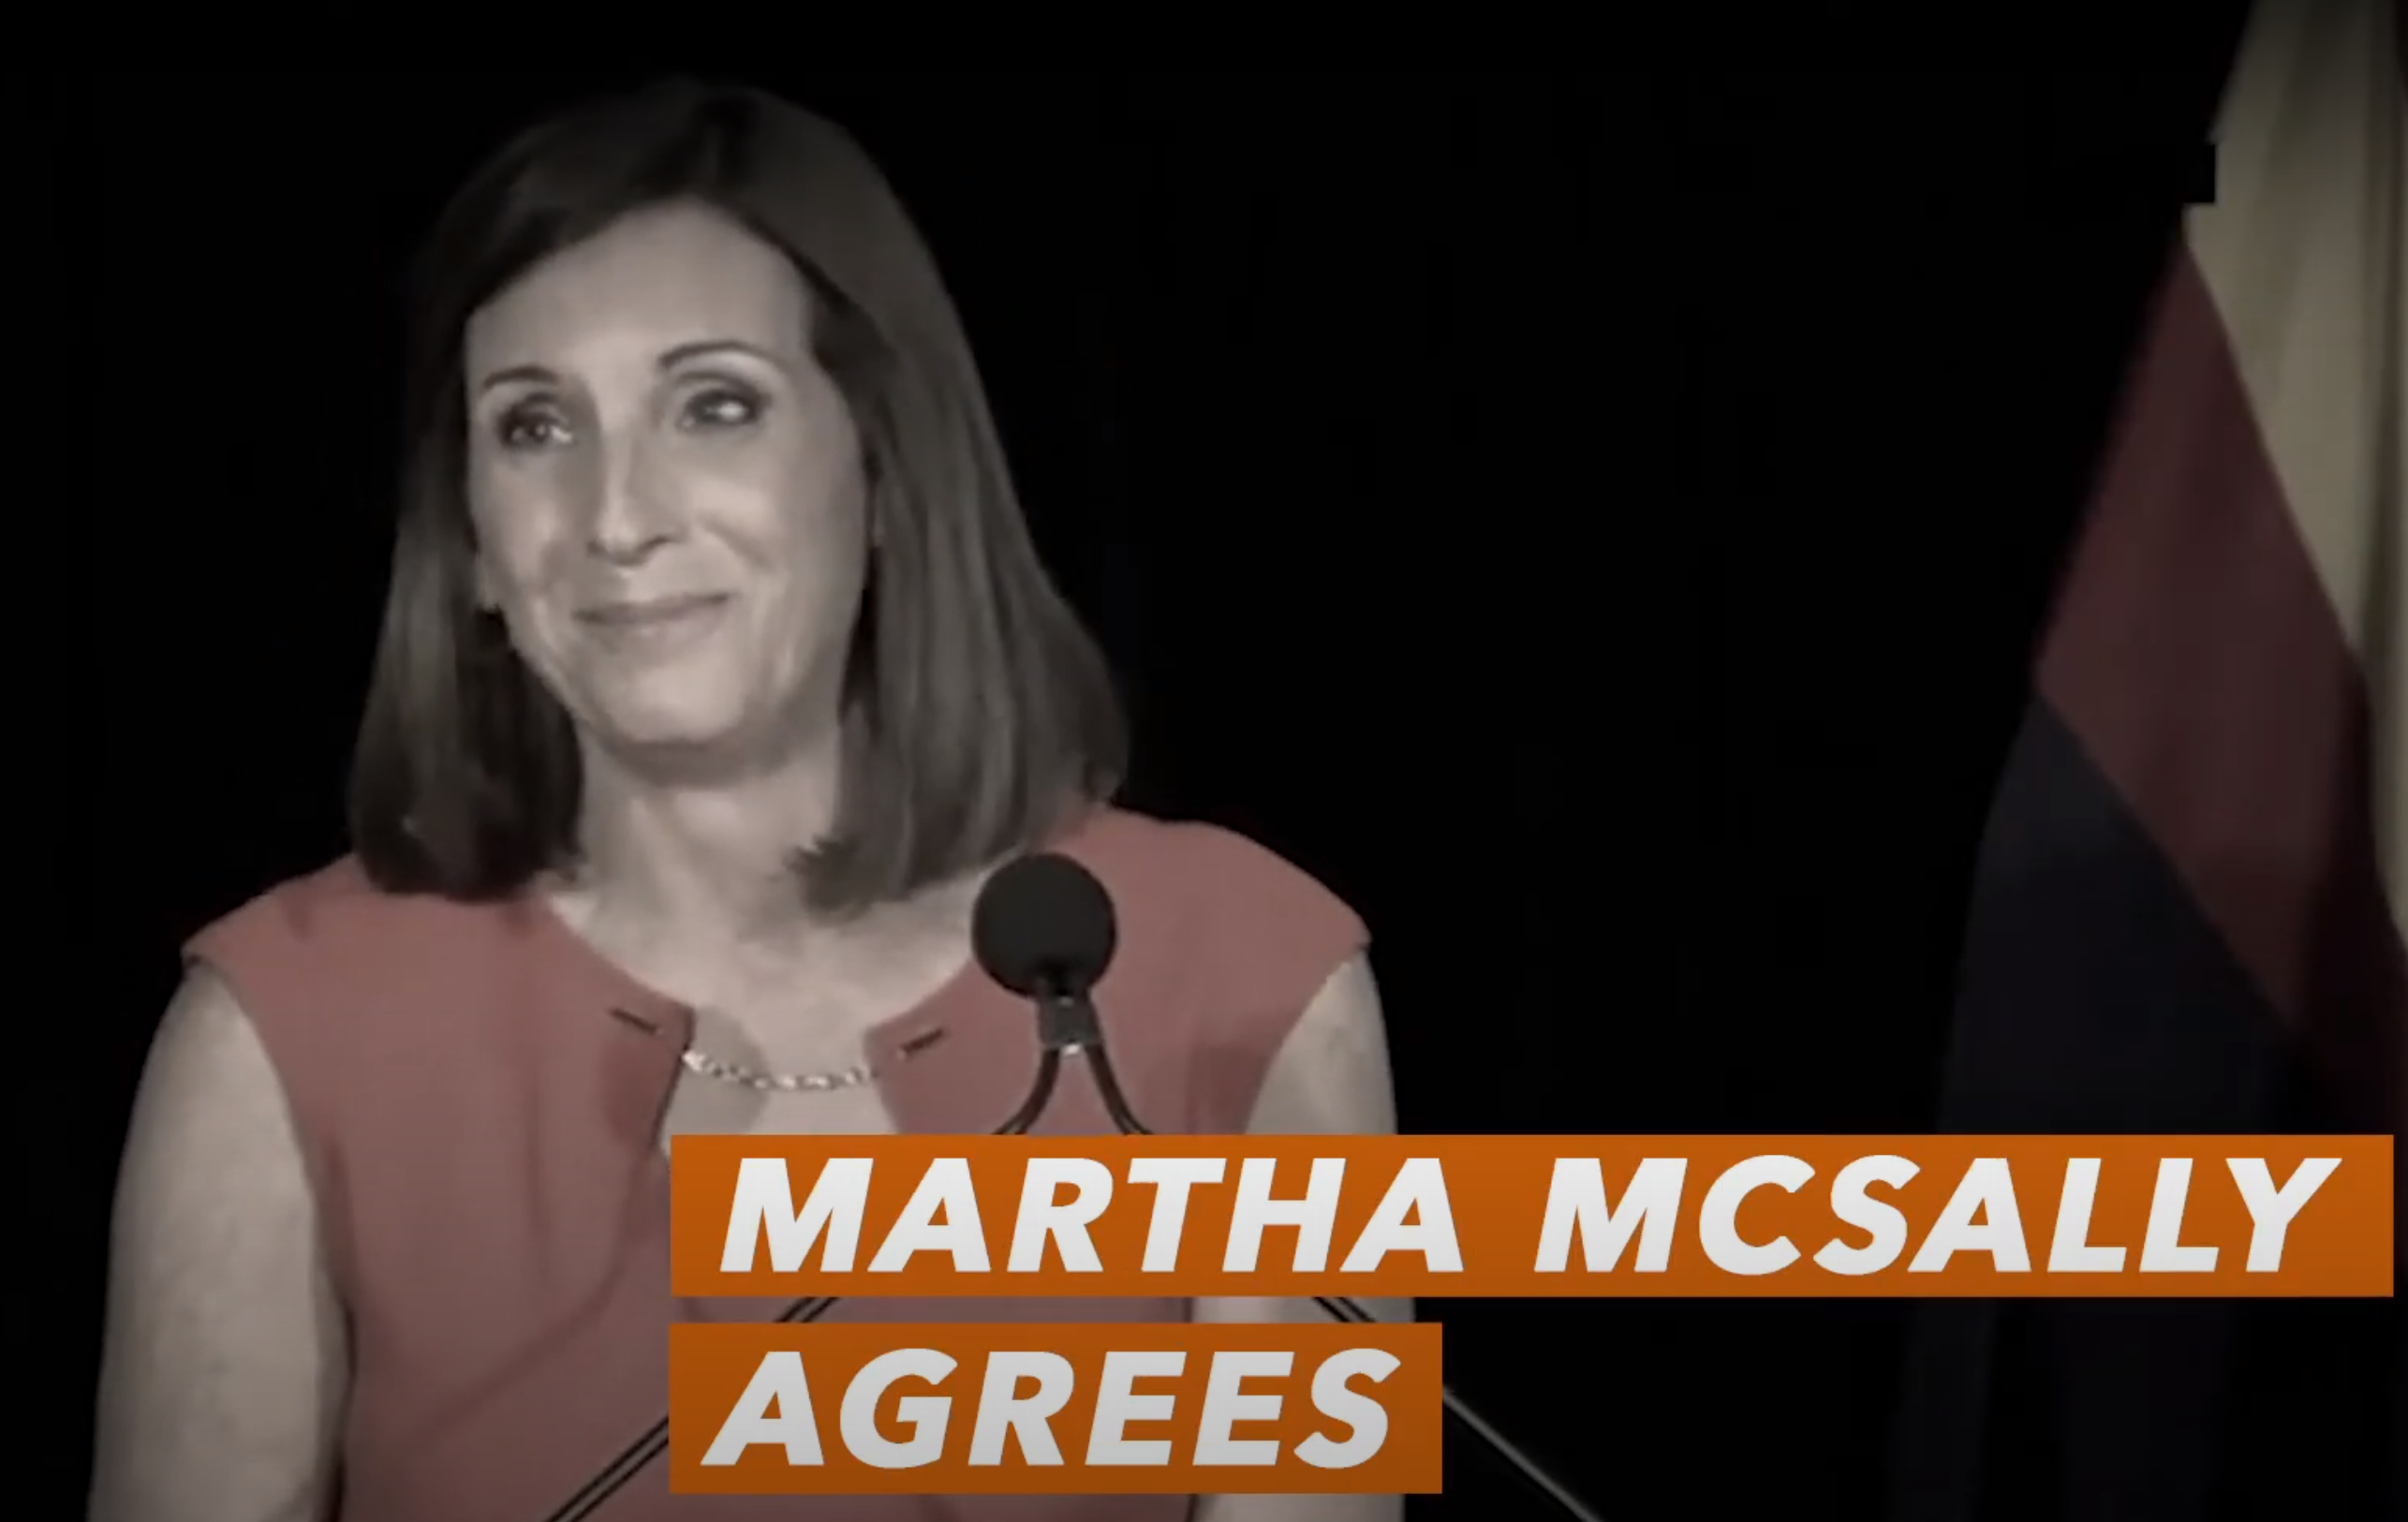 Video: McSally Wants States to Go Bankrupt, Lay Off First Responders